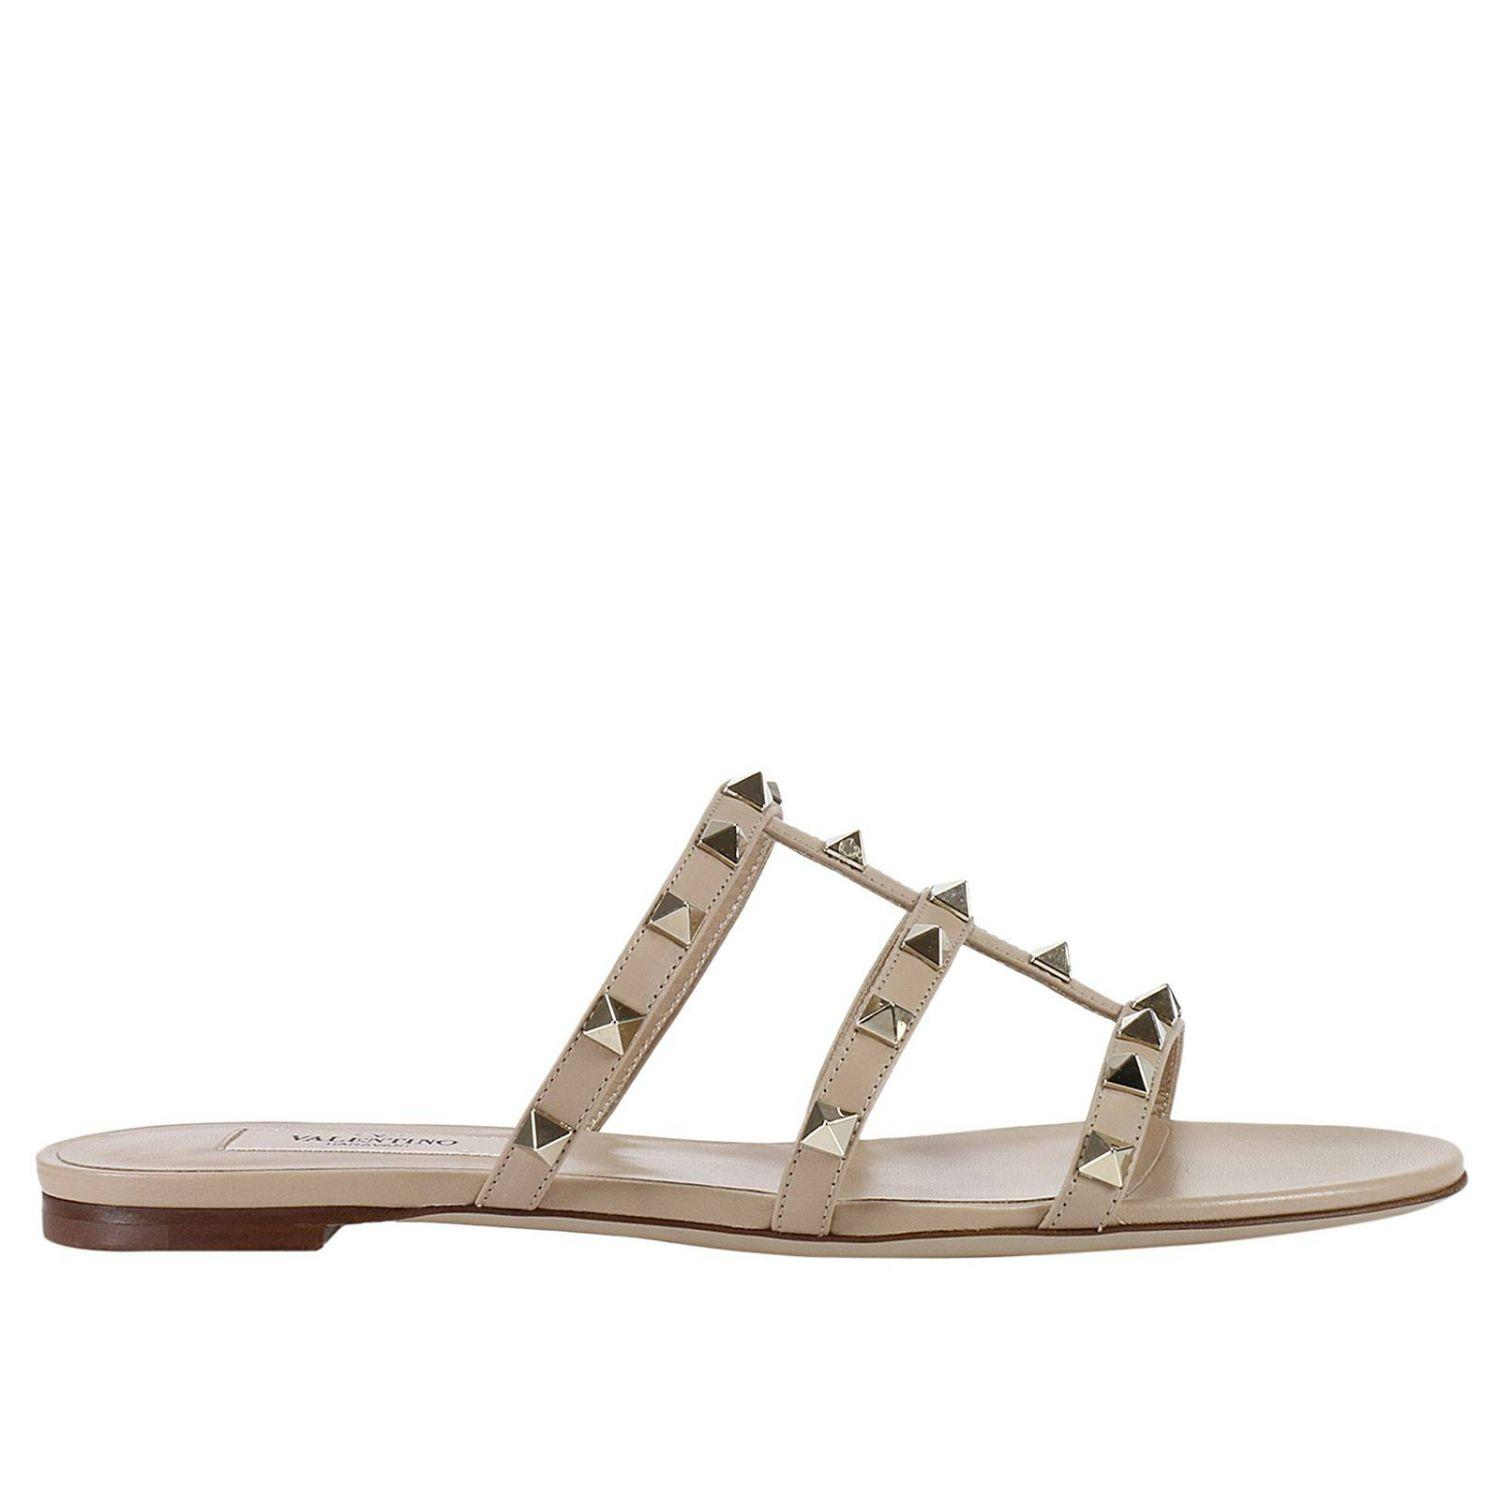 Lyst Valentino Flat Sandals Shoes Women Valentino In Natural